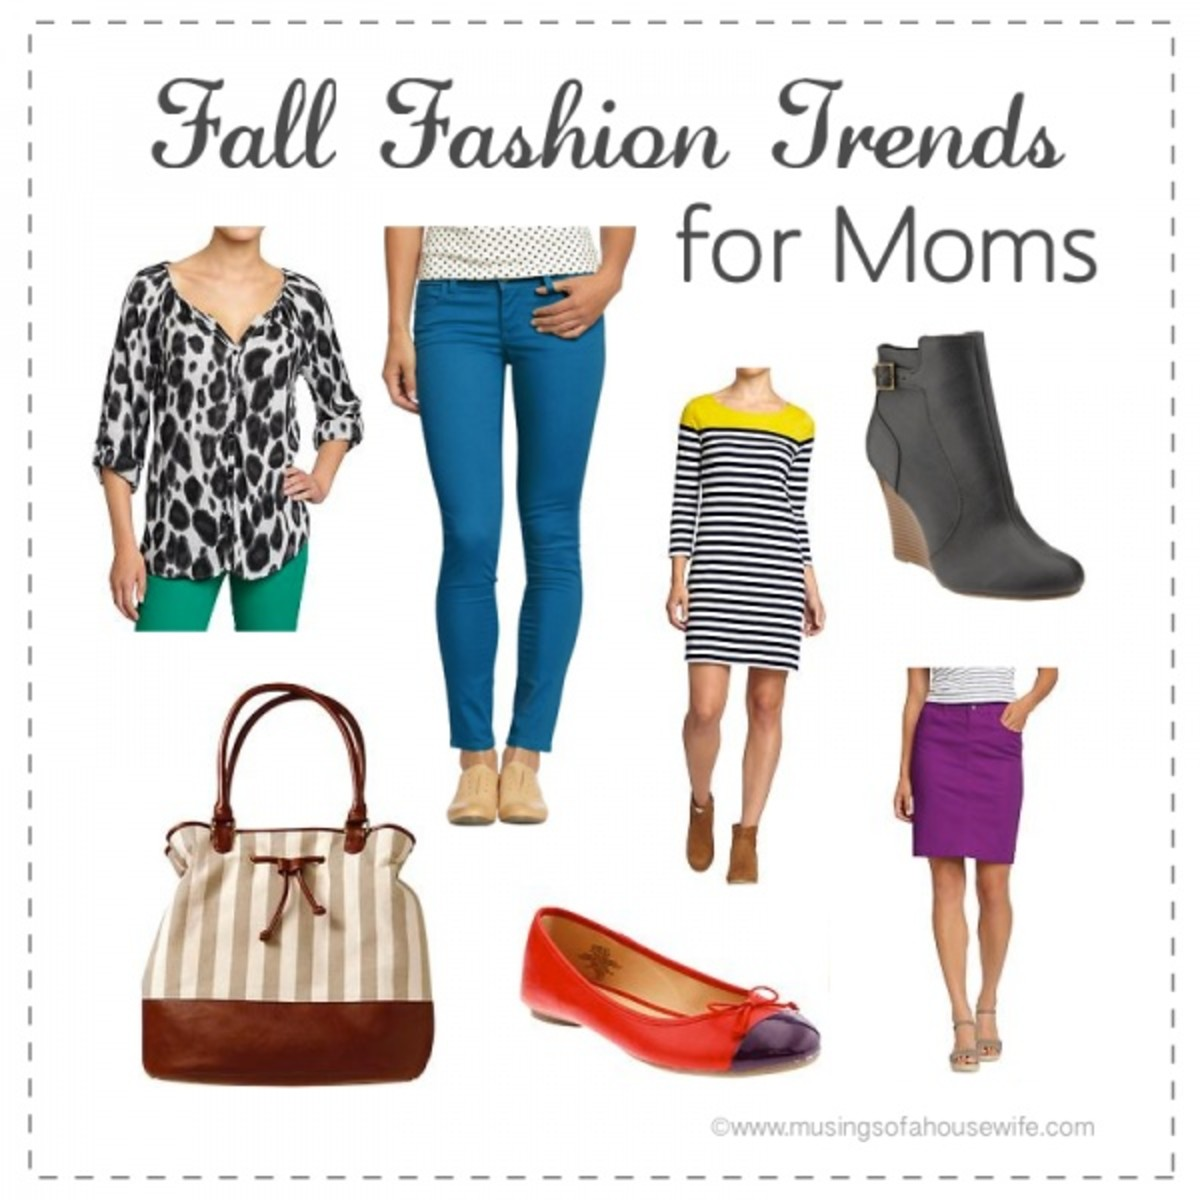 Fashion for Moms